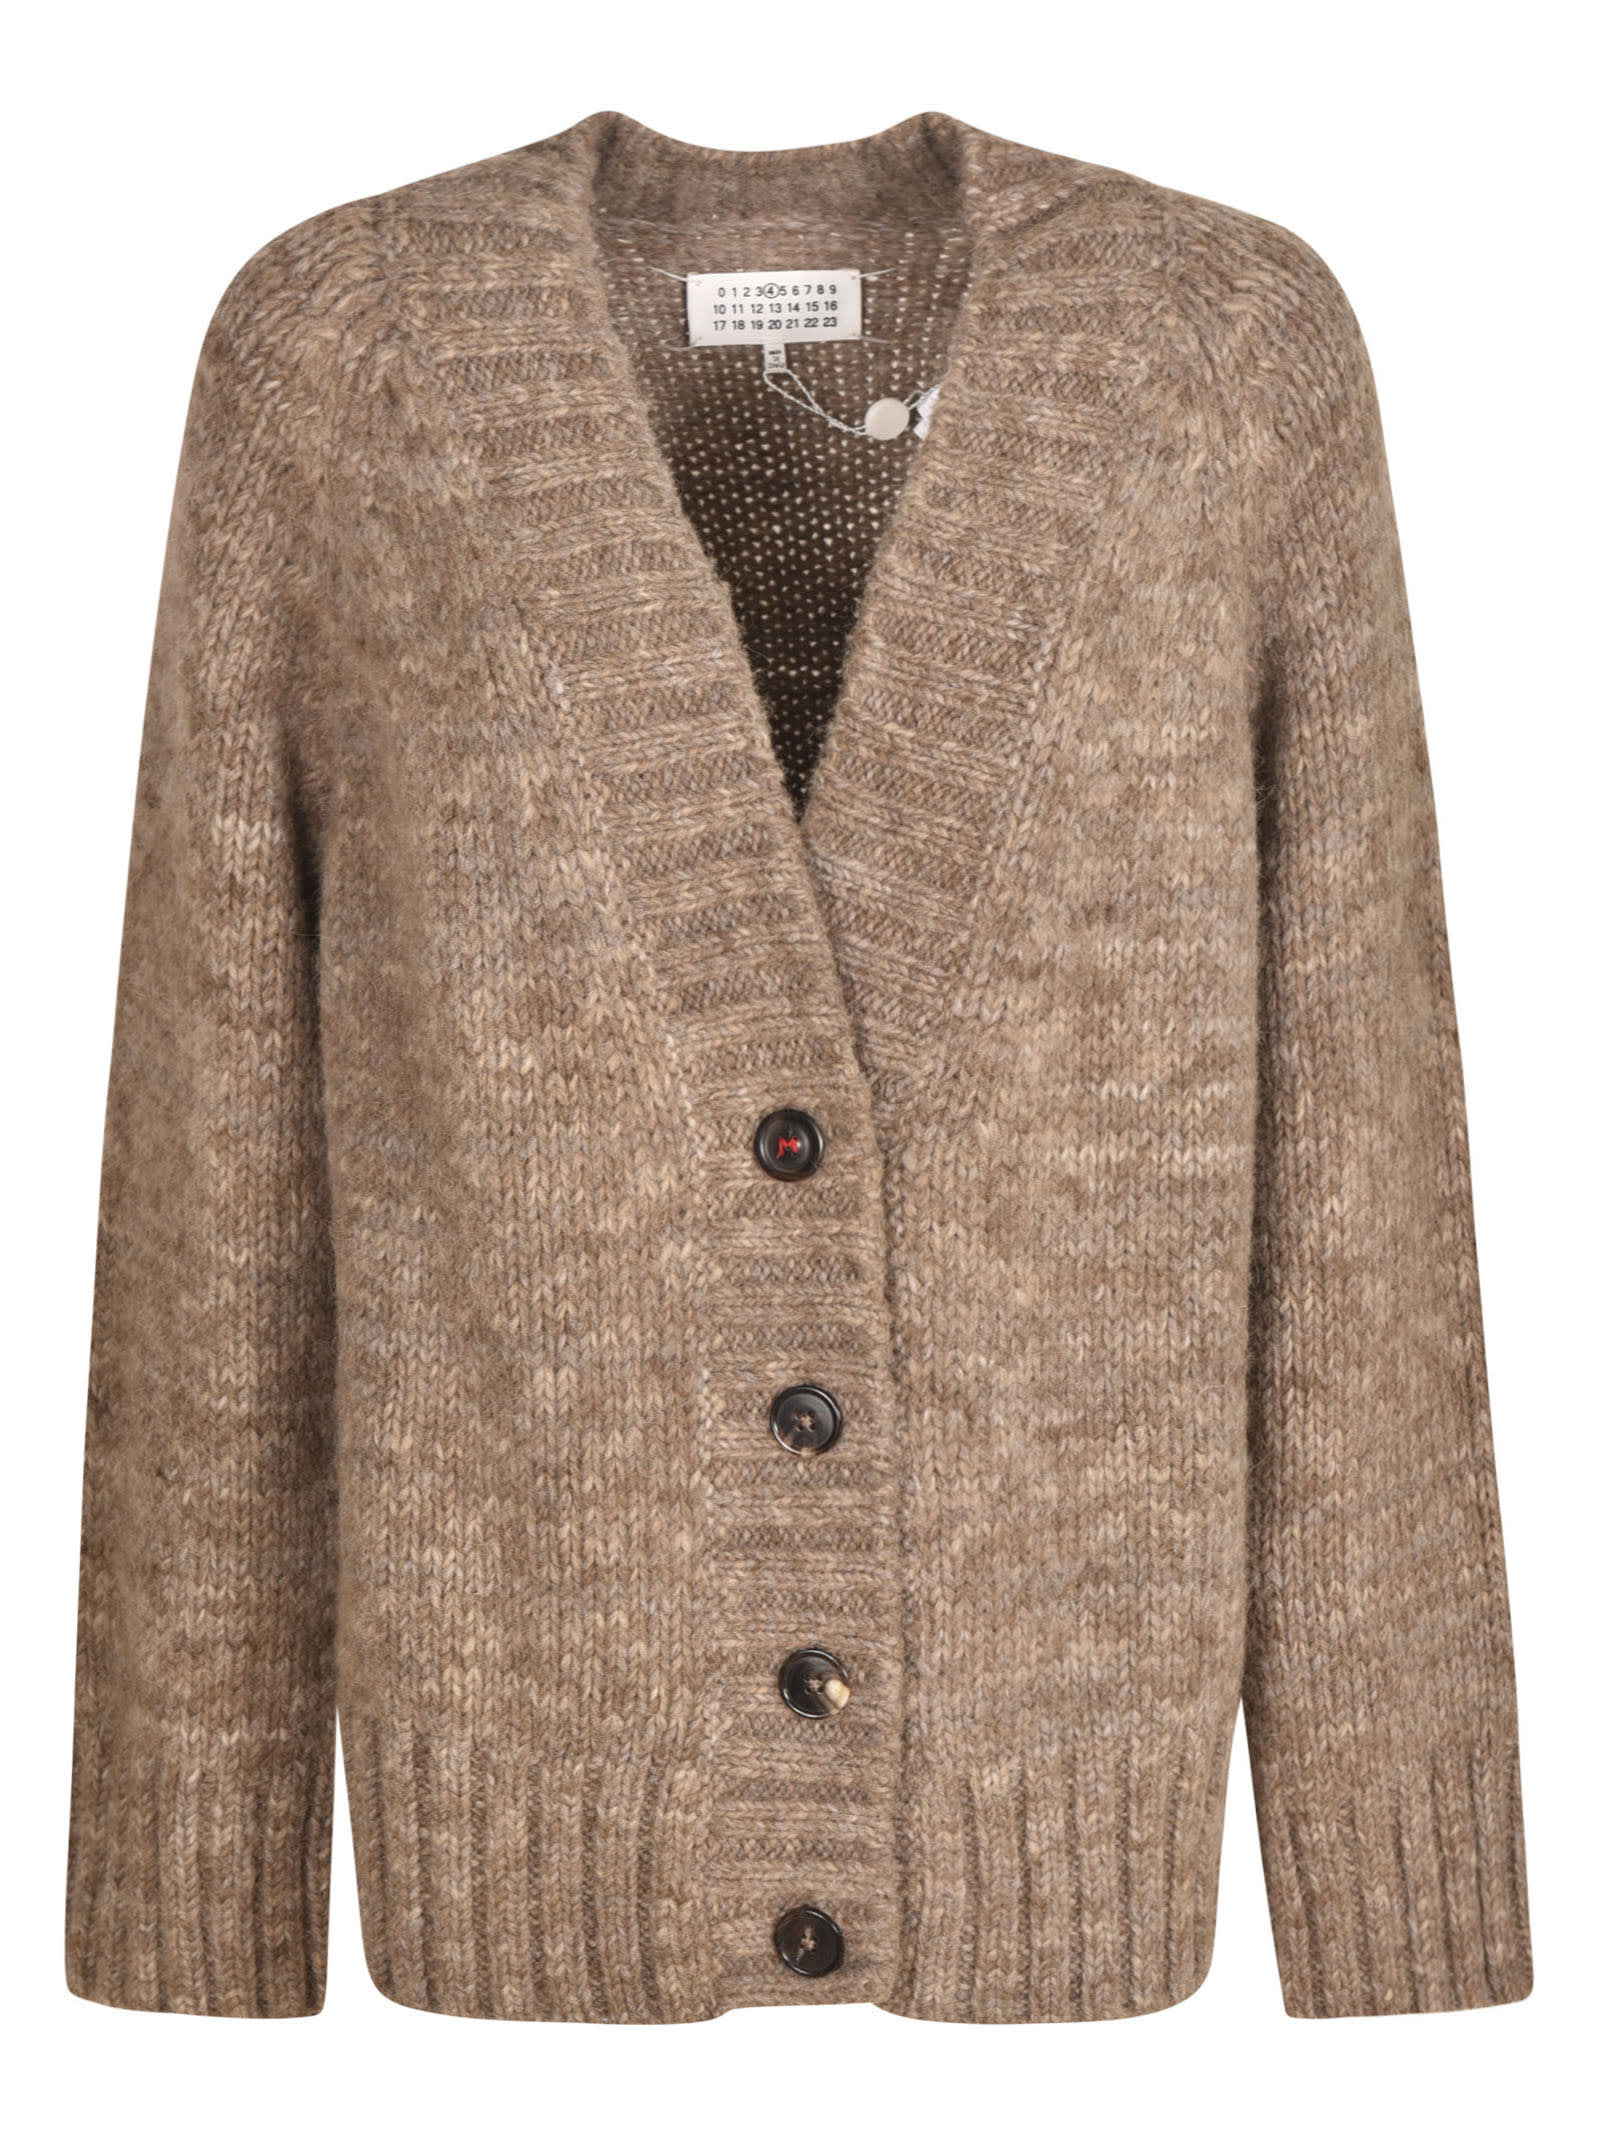 Maison Margiela Buttoned Cardigan In Brown